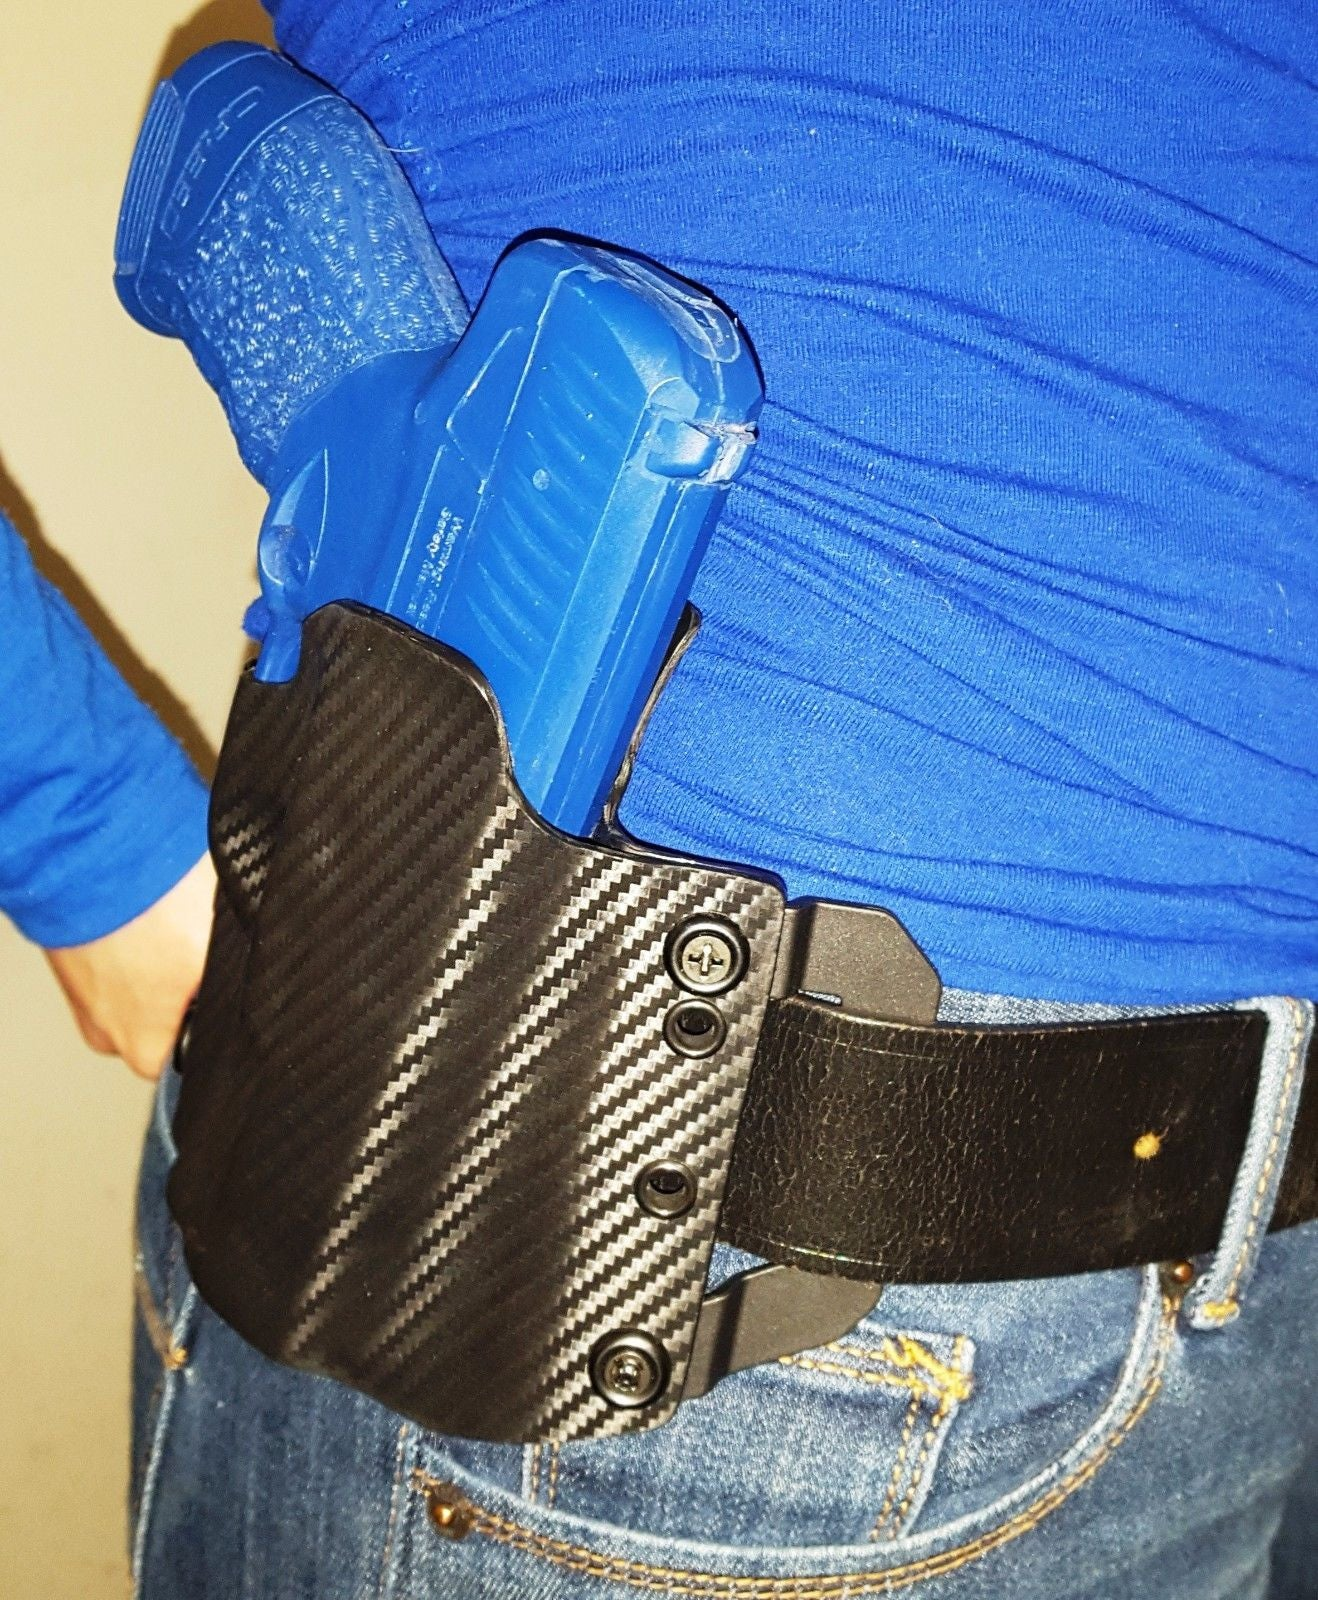 Walther CREED Holster - OWB Kydex w/ Forward Cant - (Carbon